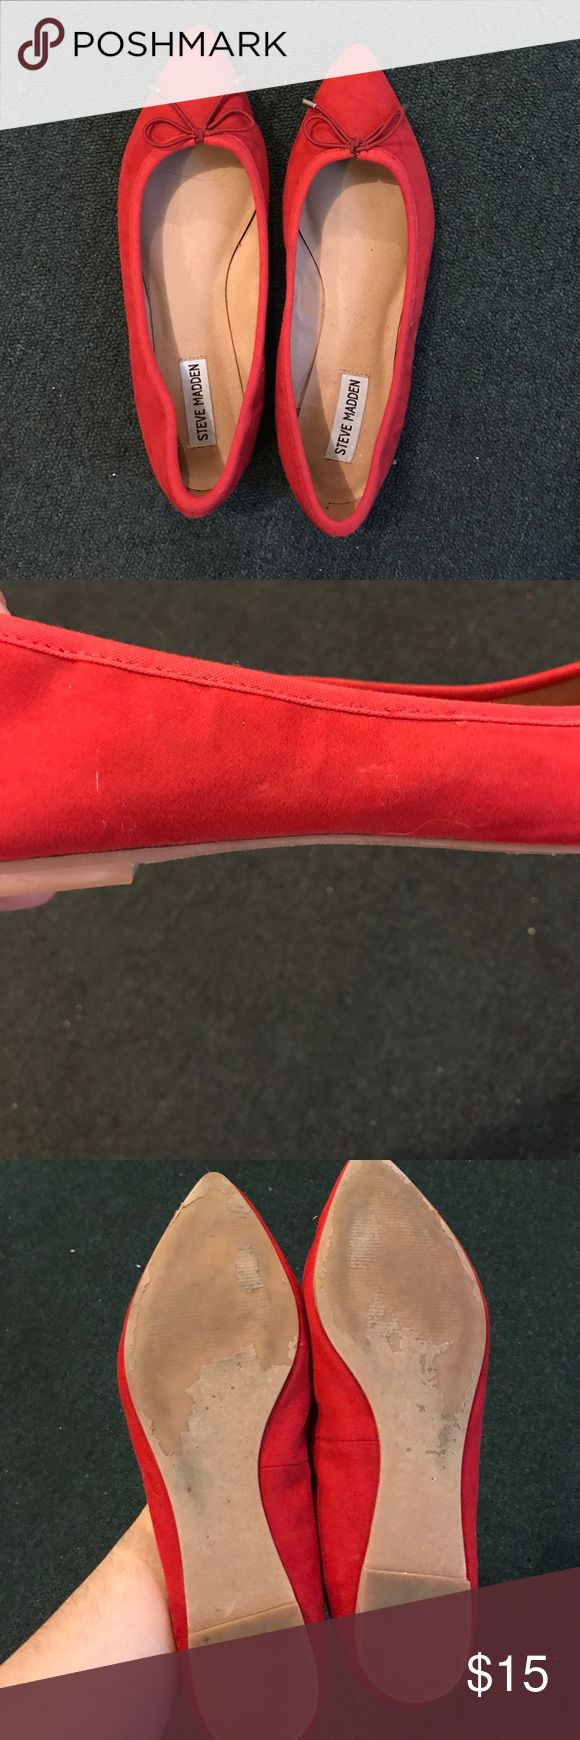 Steve Madden Red Flats Size 10. Model Serpint. Used a couple of times. Steve Madden Shoes Flats & Loafers